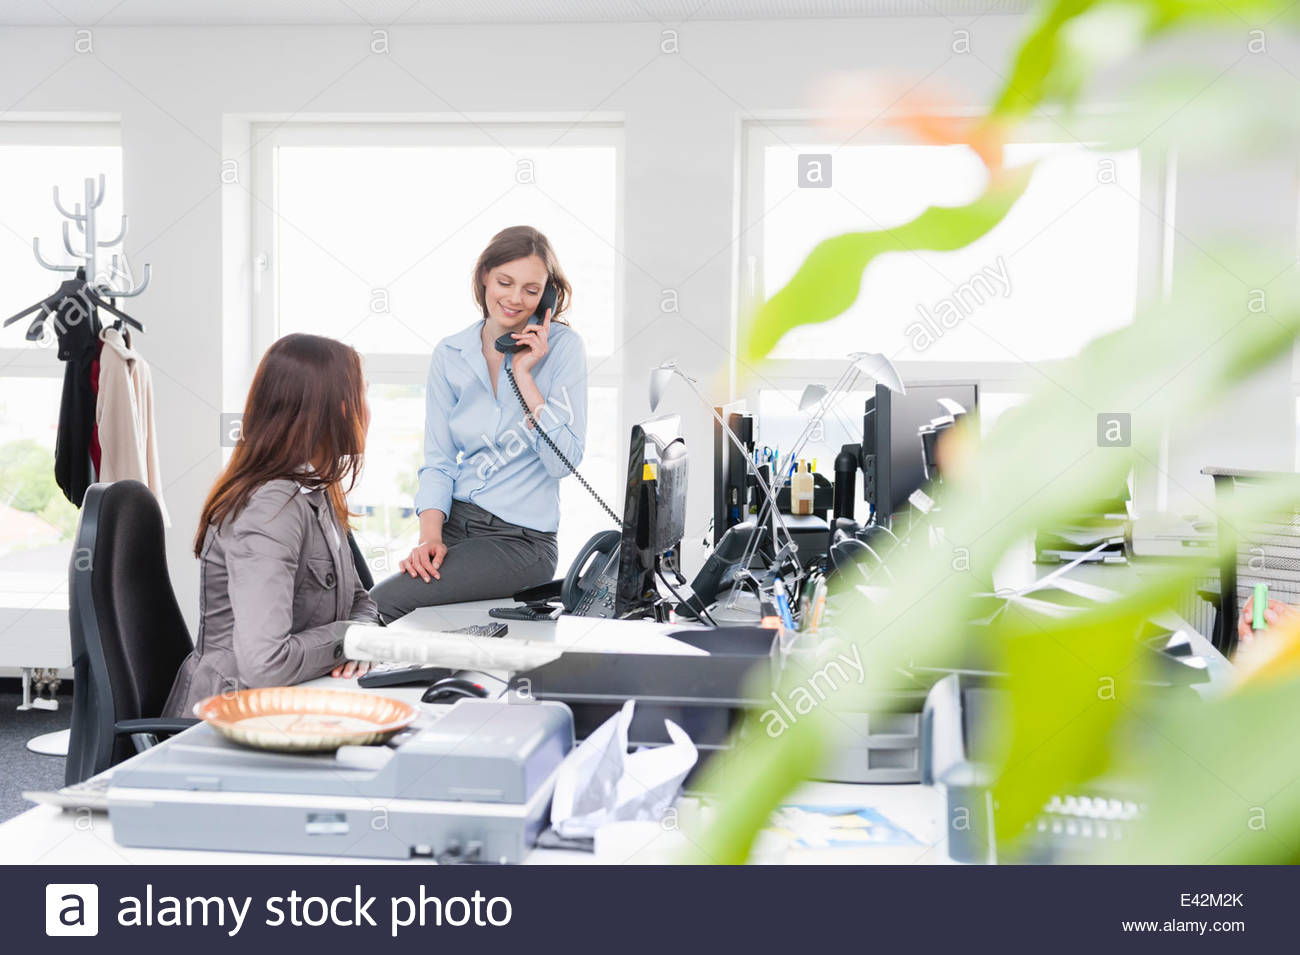 Female office workers in office - Stock Image